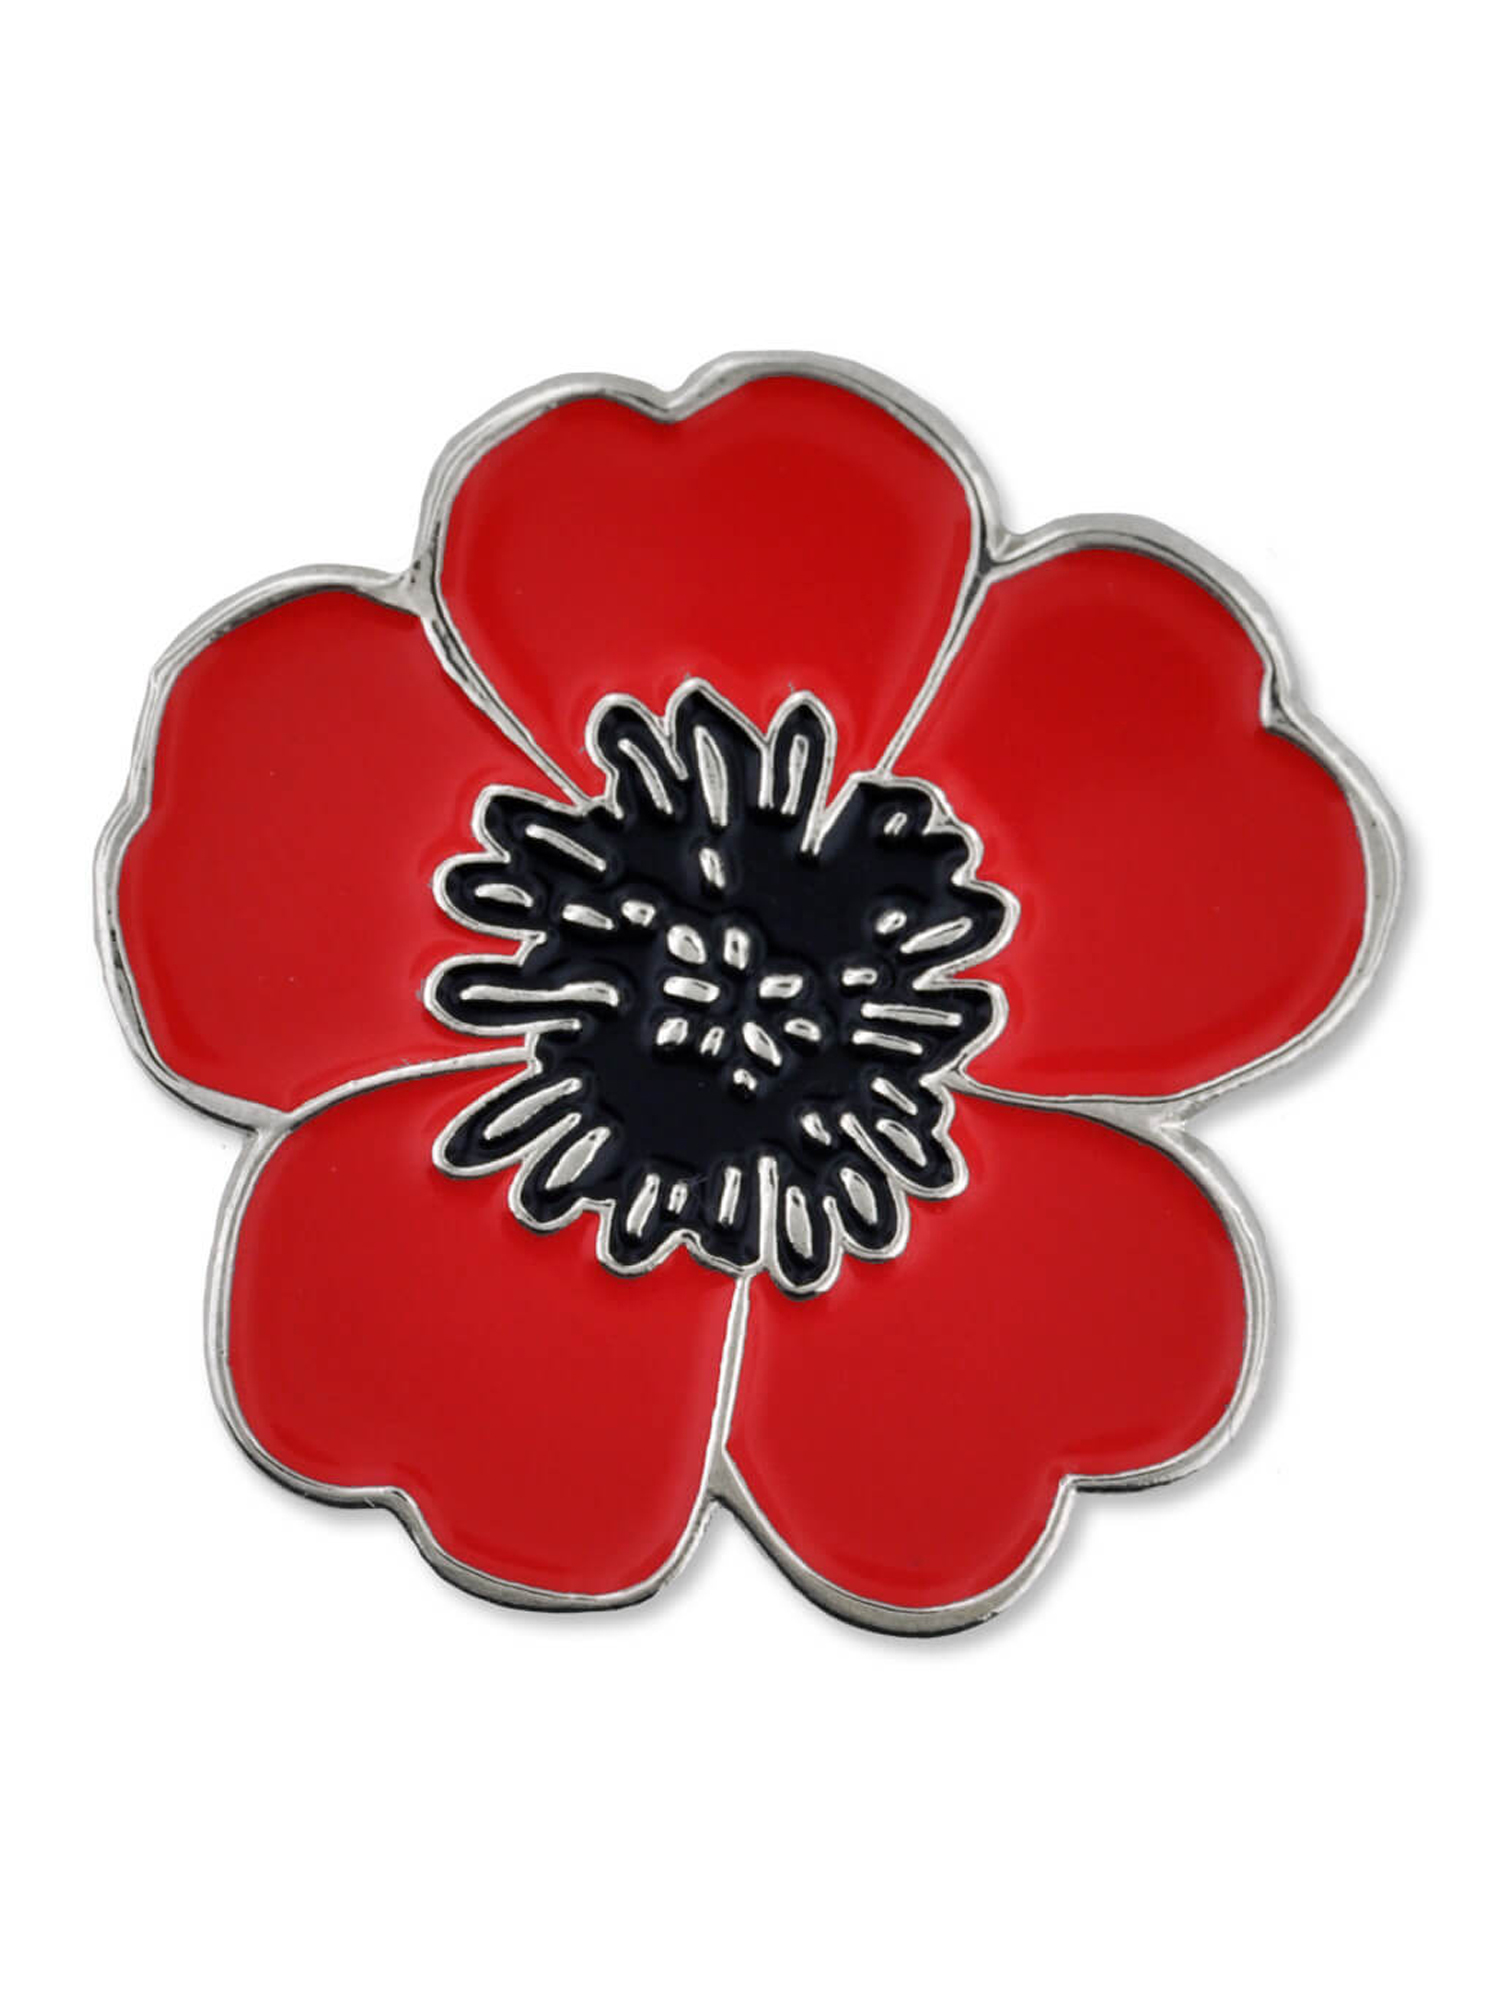 Pinmarts red poppy flower remembrance memorial day lapel pin w pinmarts red poppy flower remembrance memorial day lapel pin w magnetic back mightylinksfo